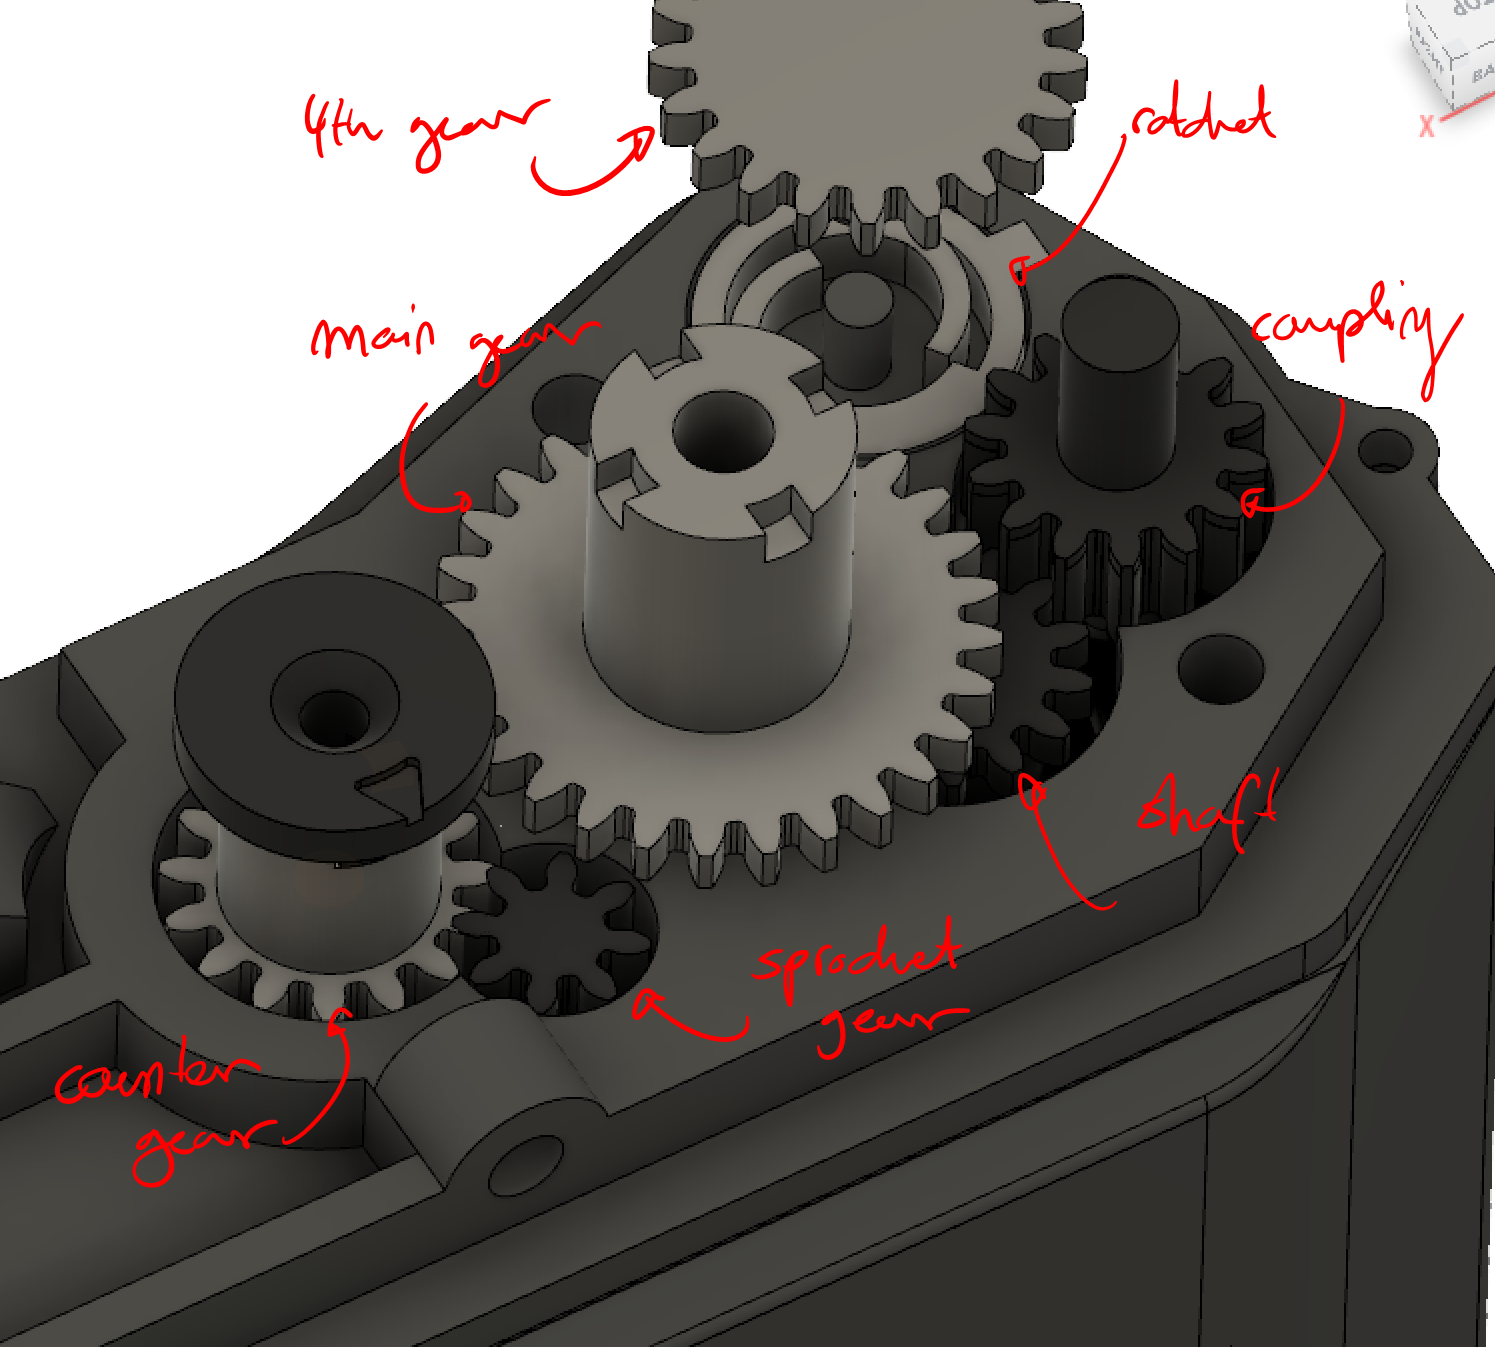 Step 4 : Gearing Assembly - Start by putting the sprocket tube in the body, then put the sprocket gear through it. Now put the counter gear on its pin, insert the take-up spool/shaft, and put the ratchet in the direction as shown. You can now screw on the gear spacer.Now take apart a ballpoint pen to get its spring, cut it to the appropriate length ( about the size of the coupling pin, but adjust as needed) and slide it onto the coupling pin. Then put on the coupling gear and the main gear on their pins, as well as the rewind shaft in its spot. Put the conical spring on the rewind shaft, so that the bottom has the smaller side, this will keep it from accidentally slipping.If you find that the gearing is feeling rough, you can sand the gears surfaces a bit (not the teeth, but the flat parts that might be rubbing on the body/spacer and/or add some general purpose grease.